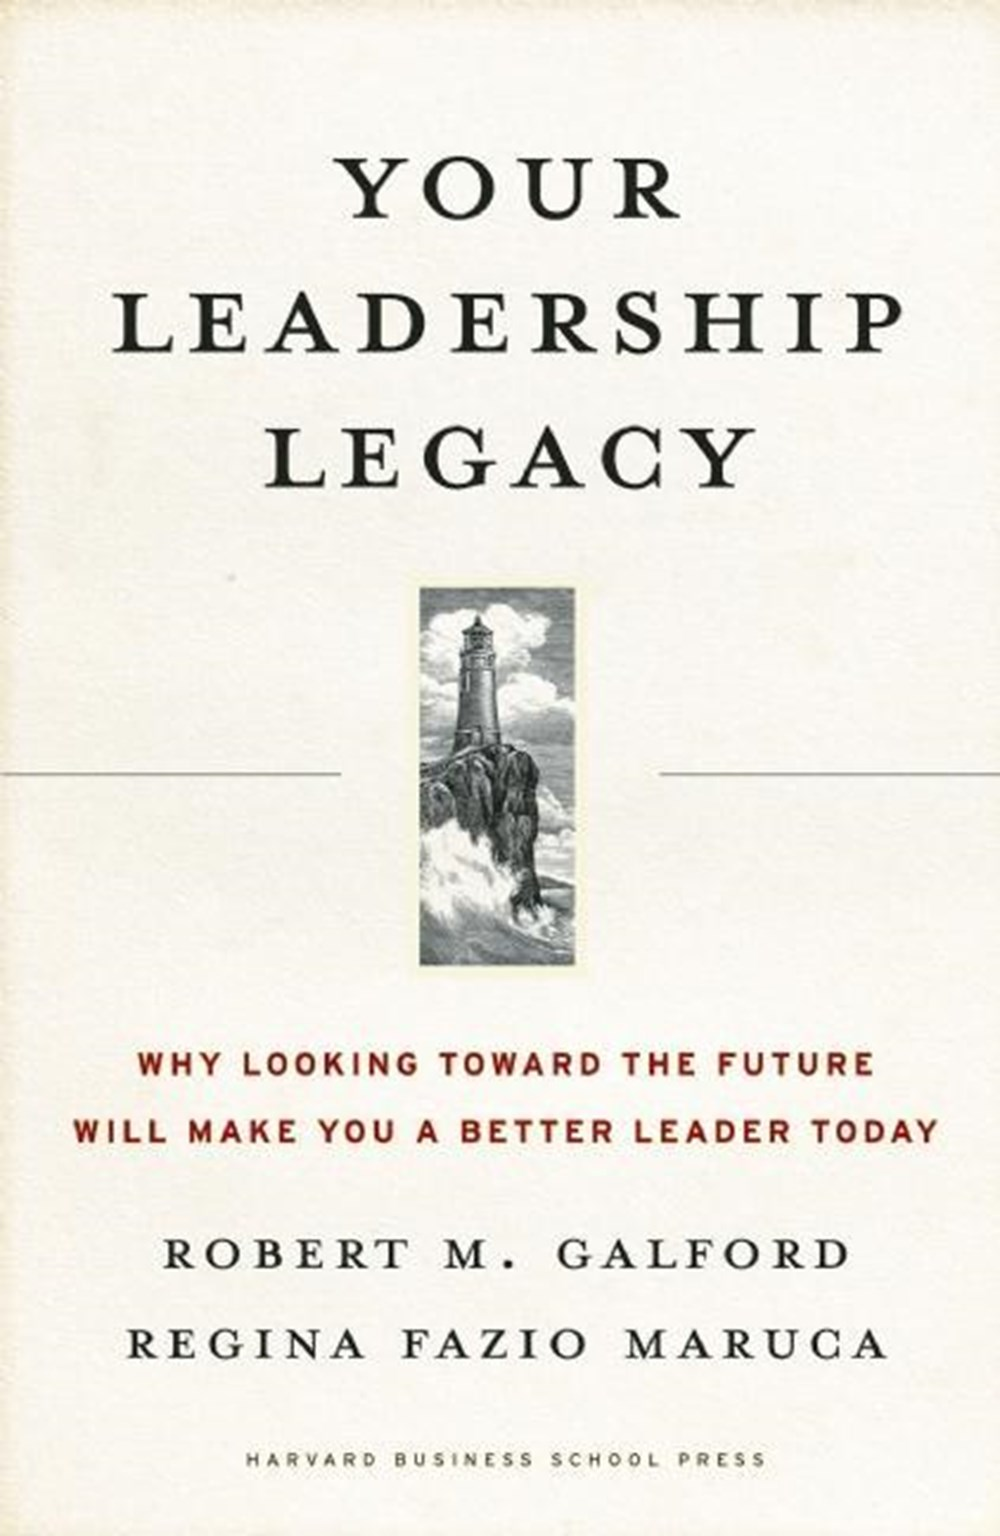 Your Leadership Legacy Why Looking Toward the Future Will Make You a Better Leader Today